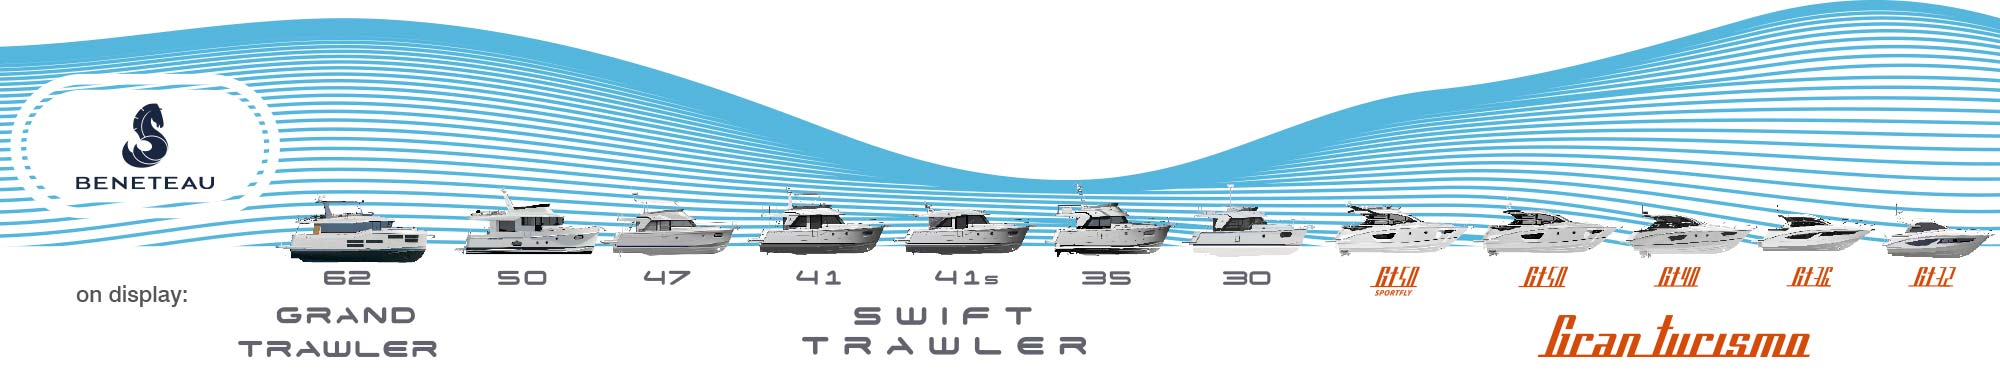 beneteau power line up 2021